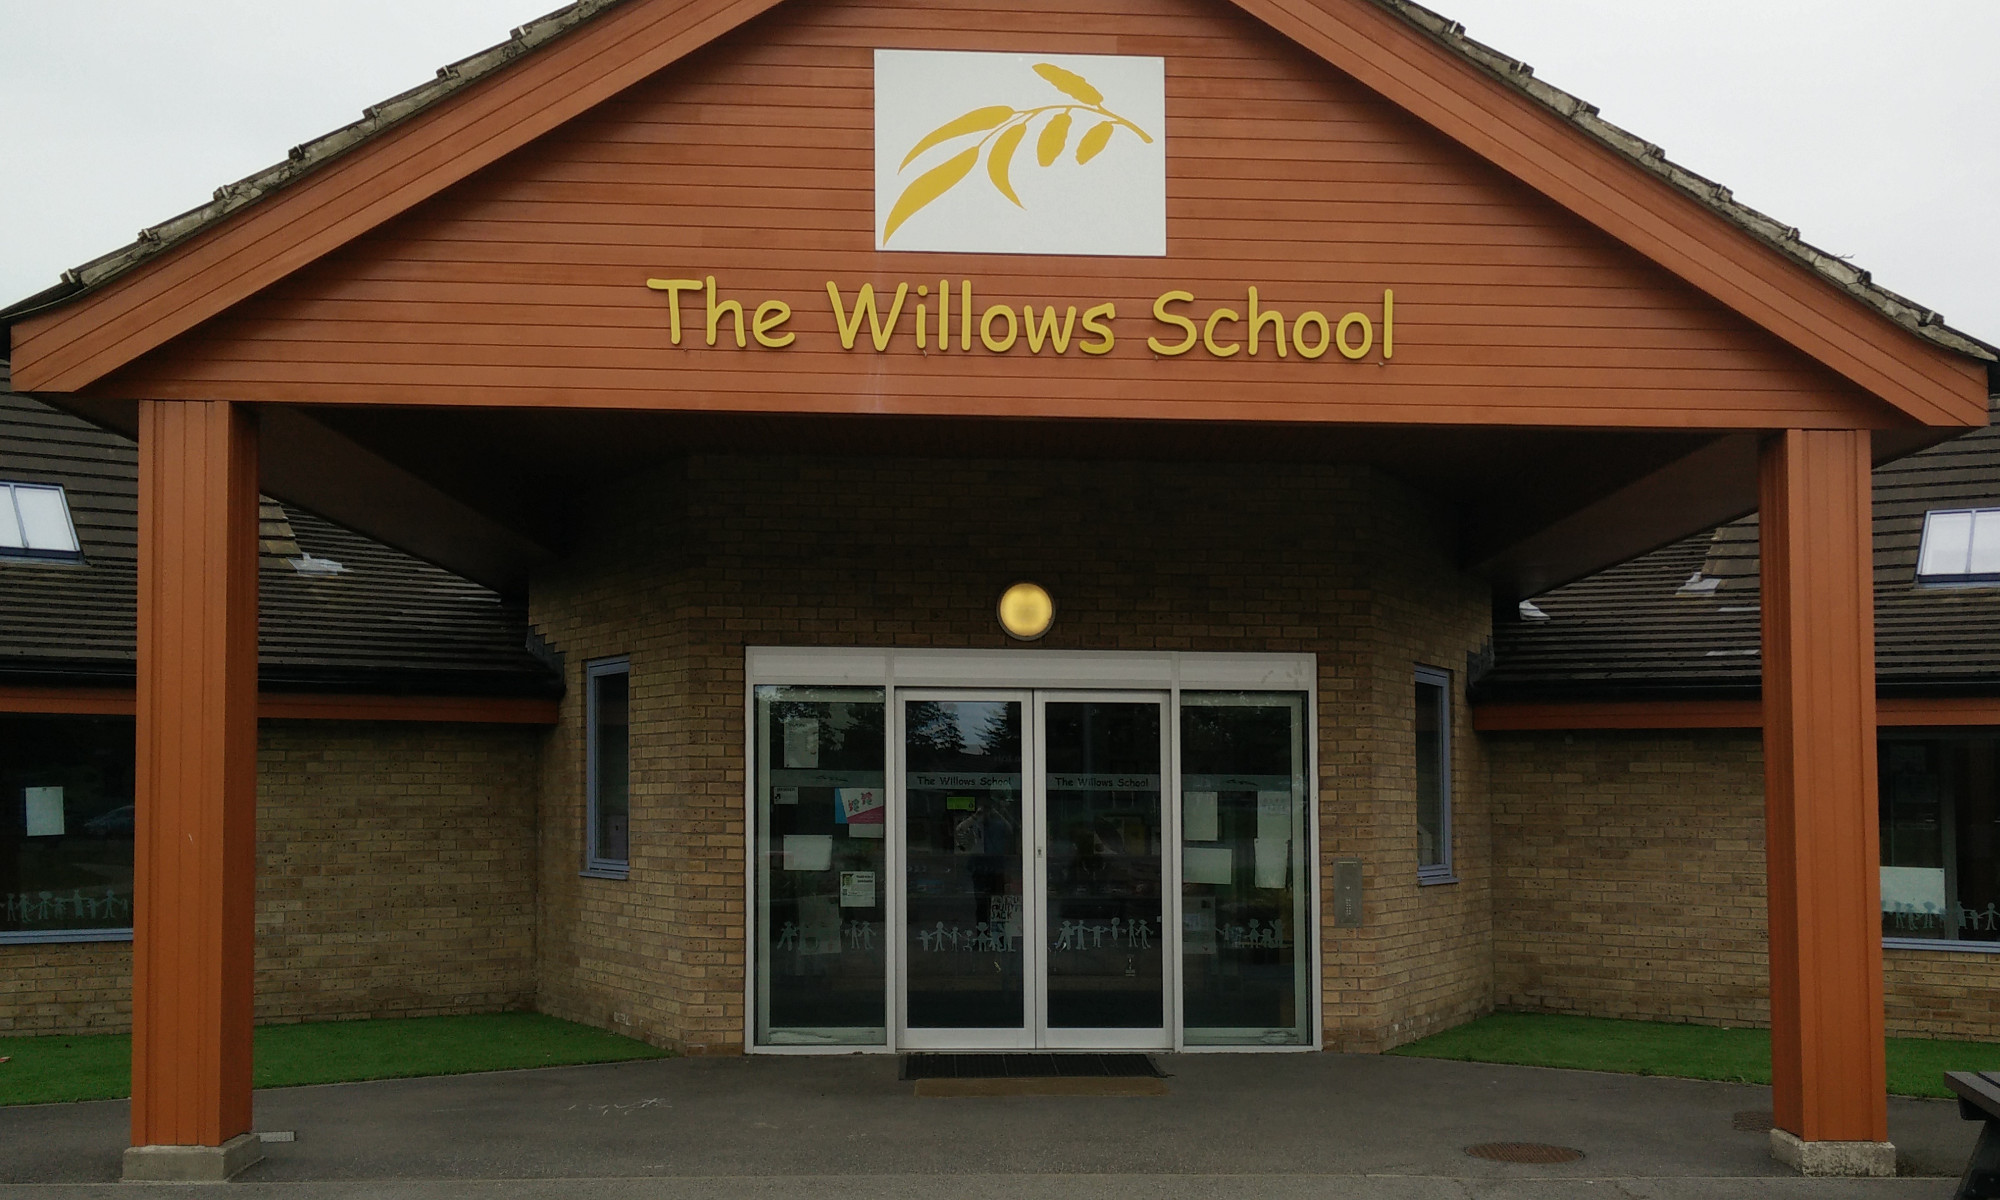 The Willows school